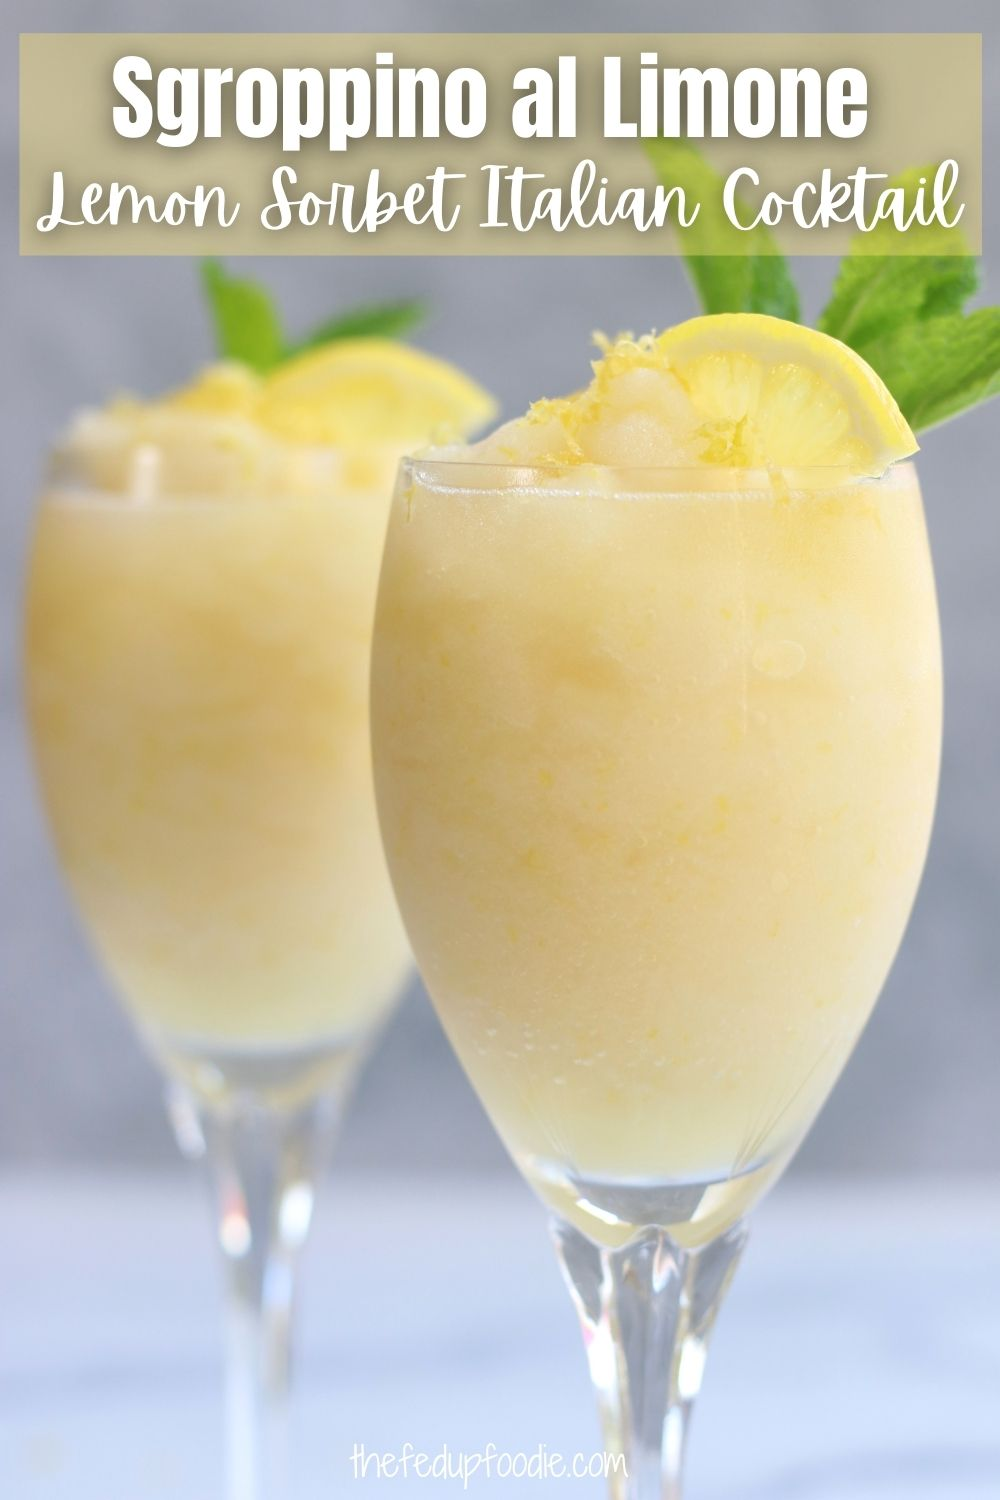 Made with Lemon Sorbet (or gelato), Prosecco and chilled vodka, Sgroppino is a heavenly after dinner cocktail that is extremely easy to make. This drink is perfect for celebrations, served after a heavier meal or as a dessert for lemon lovers. #Sgroppino #SgroppinoCocktails #SgroppinoAlLimone #ItalianDrinksAlcohol #ProseccoCocktailsEasy #ItalianCocktailsRecipes #LemonItalianIceCocktail #LemonVodkaDrinks #LemonVodkaCocktails #DessertCocktails #CoolCocktailRecipes #AfterDinnerCocktails